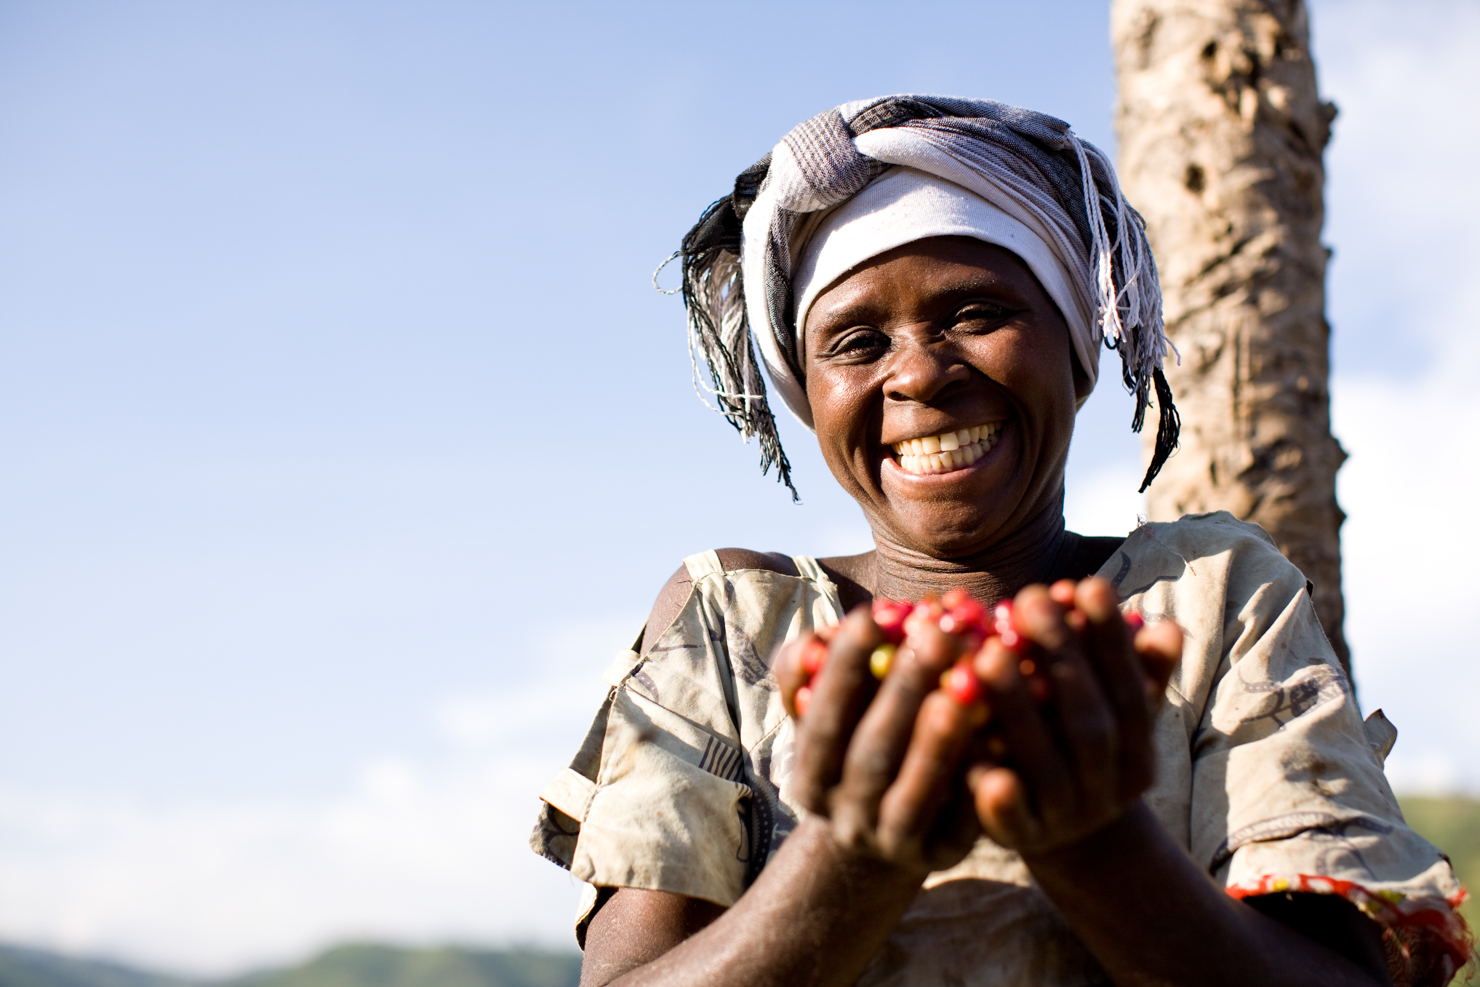 women coffee farmers production international trade centre female africa south america sprudge